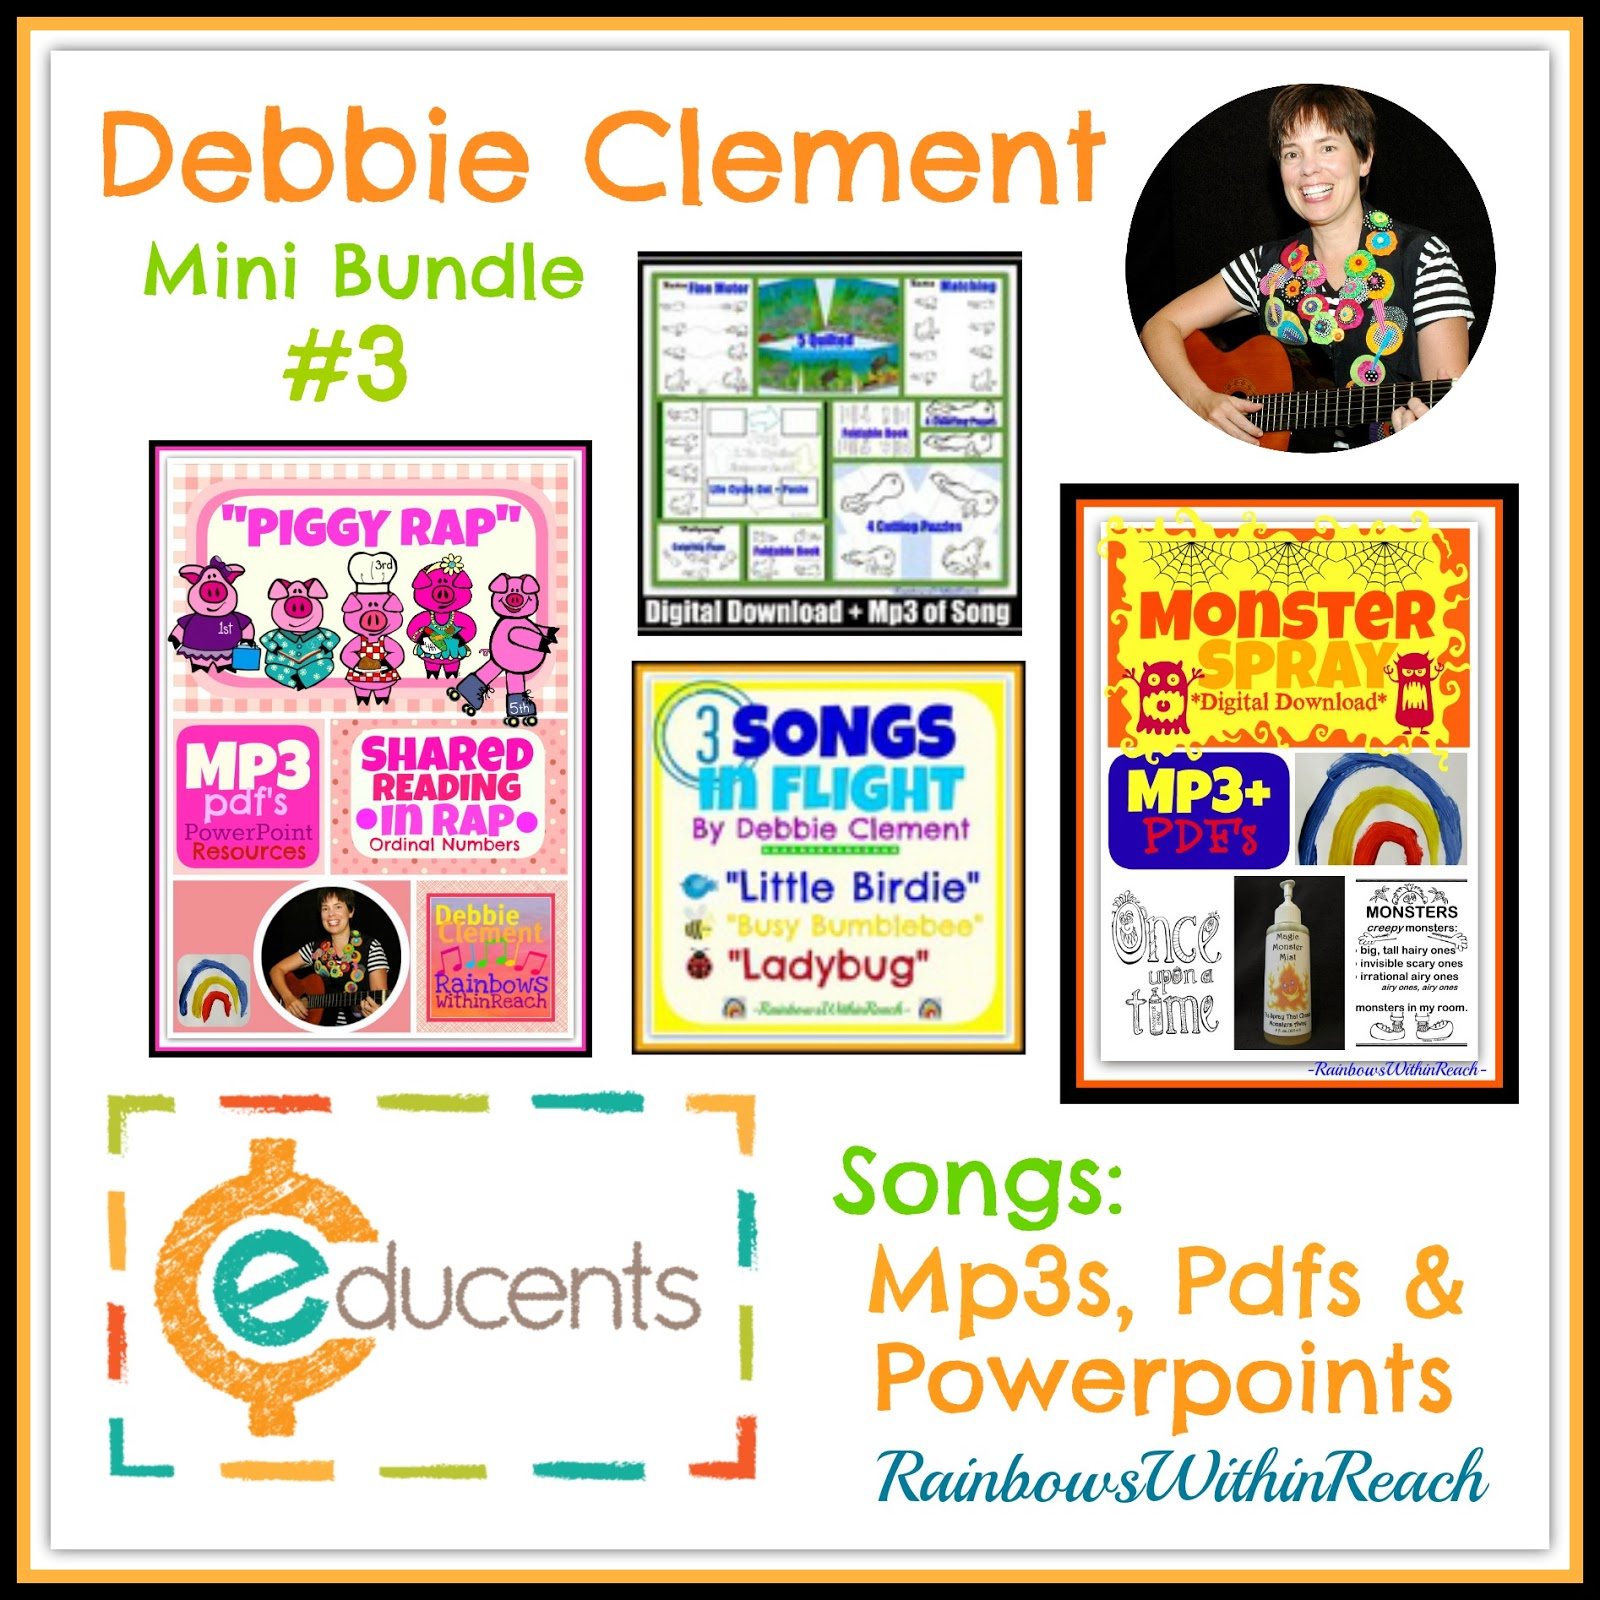 Debbie Clement's Songs in Digital Download at DEEPLY Discounted Prices through Educents